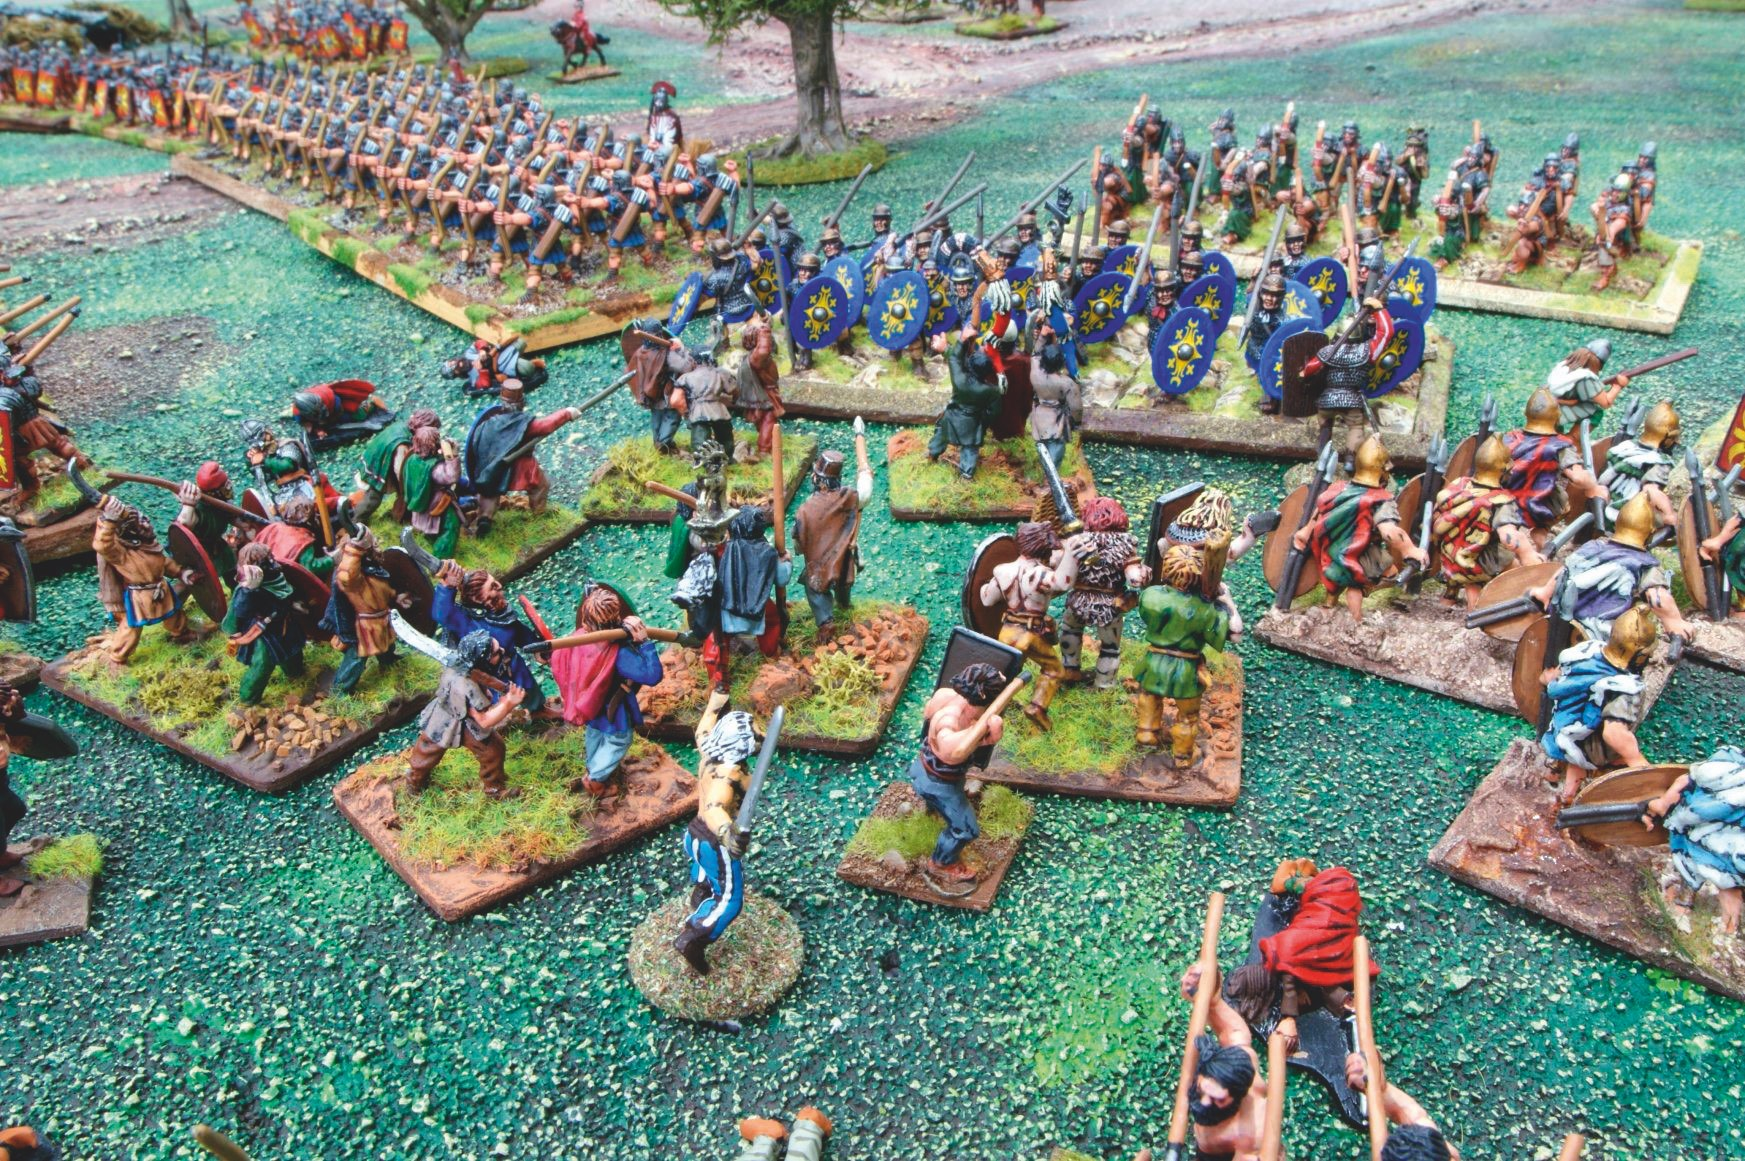 A few desperate tribesmen mount a last counter-attack against the Romans.